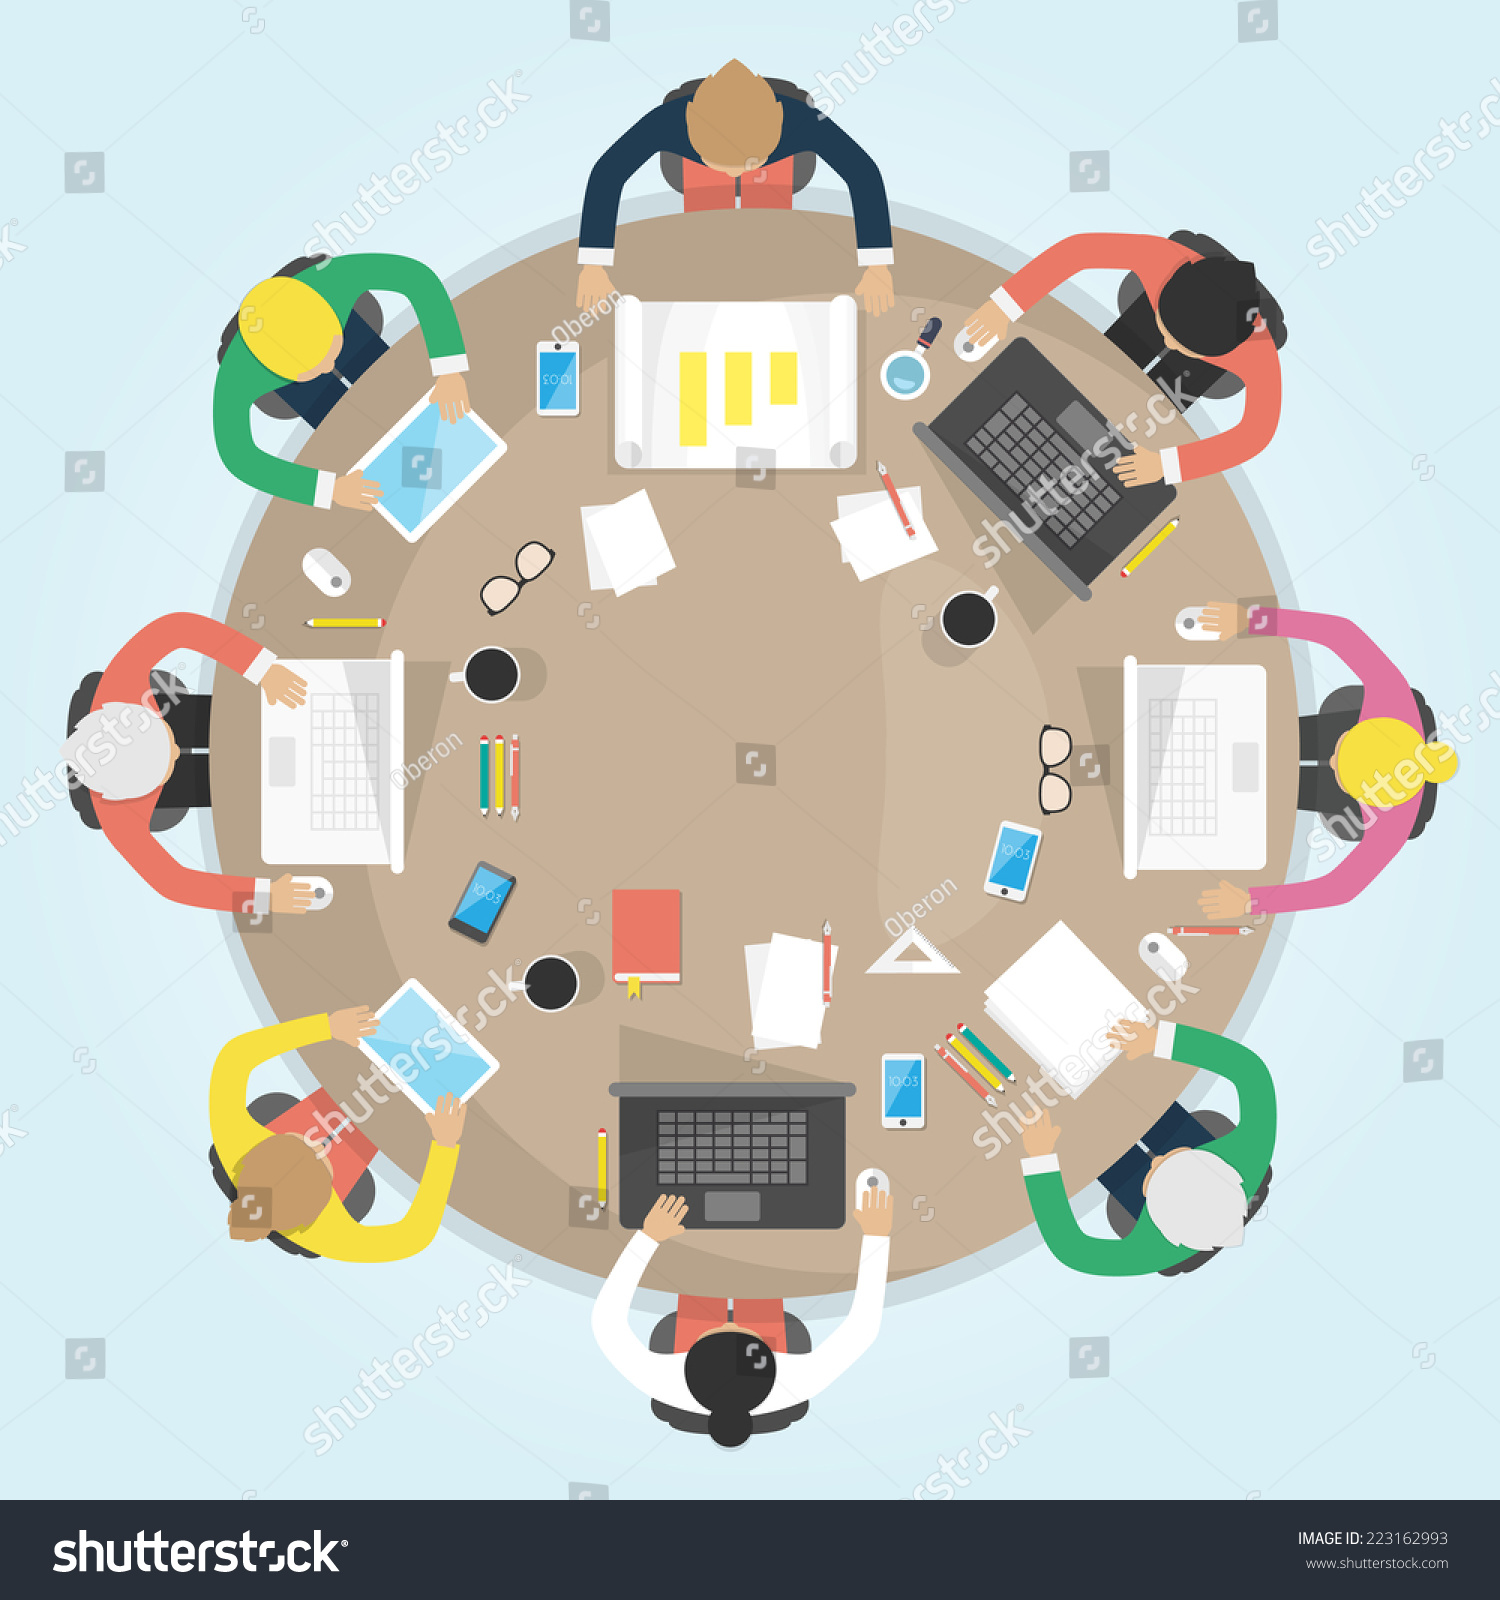 Round table meeting icon - Business Round Table Flat Design Vector Illustration Meeting Office Teamwork Brianstorming